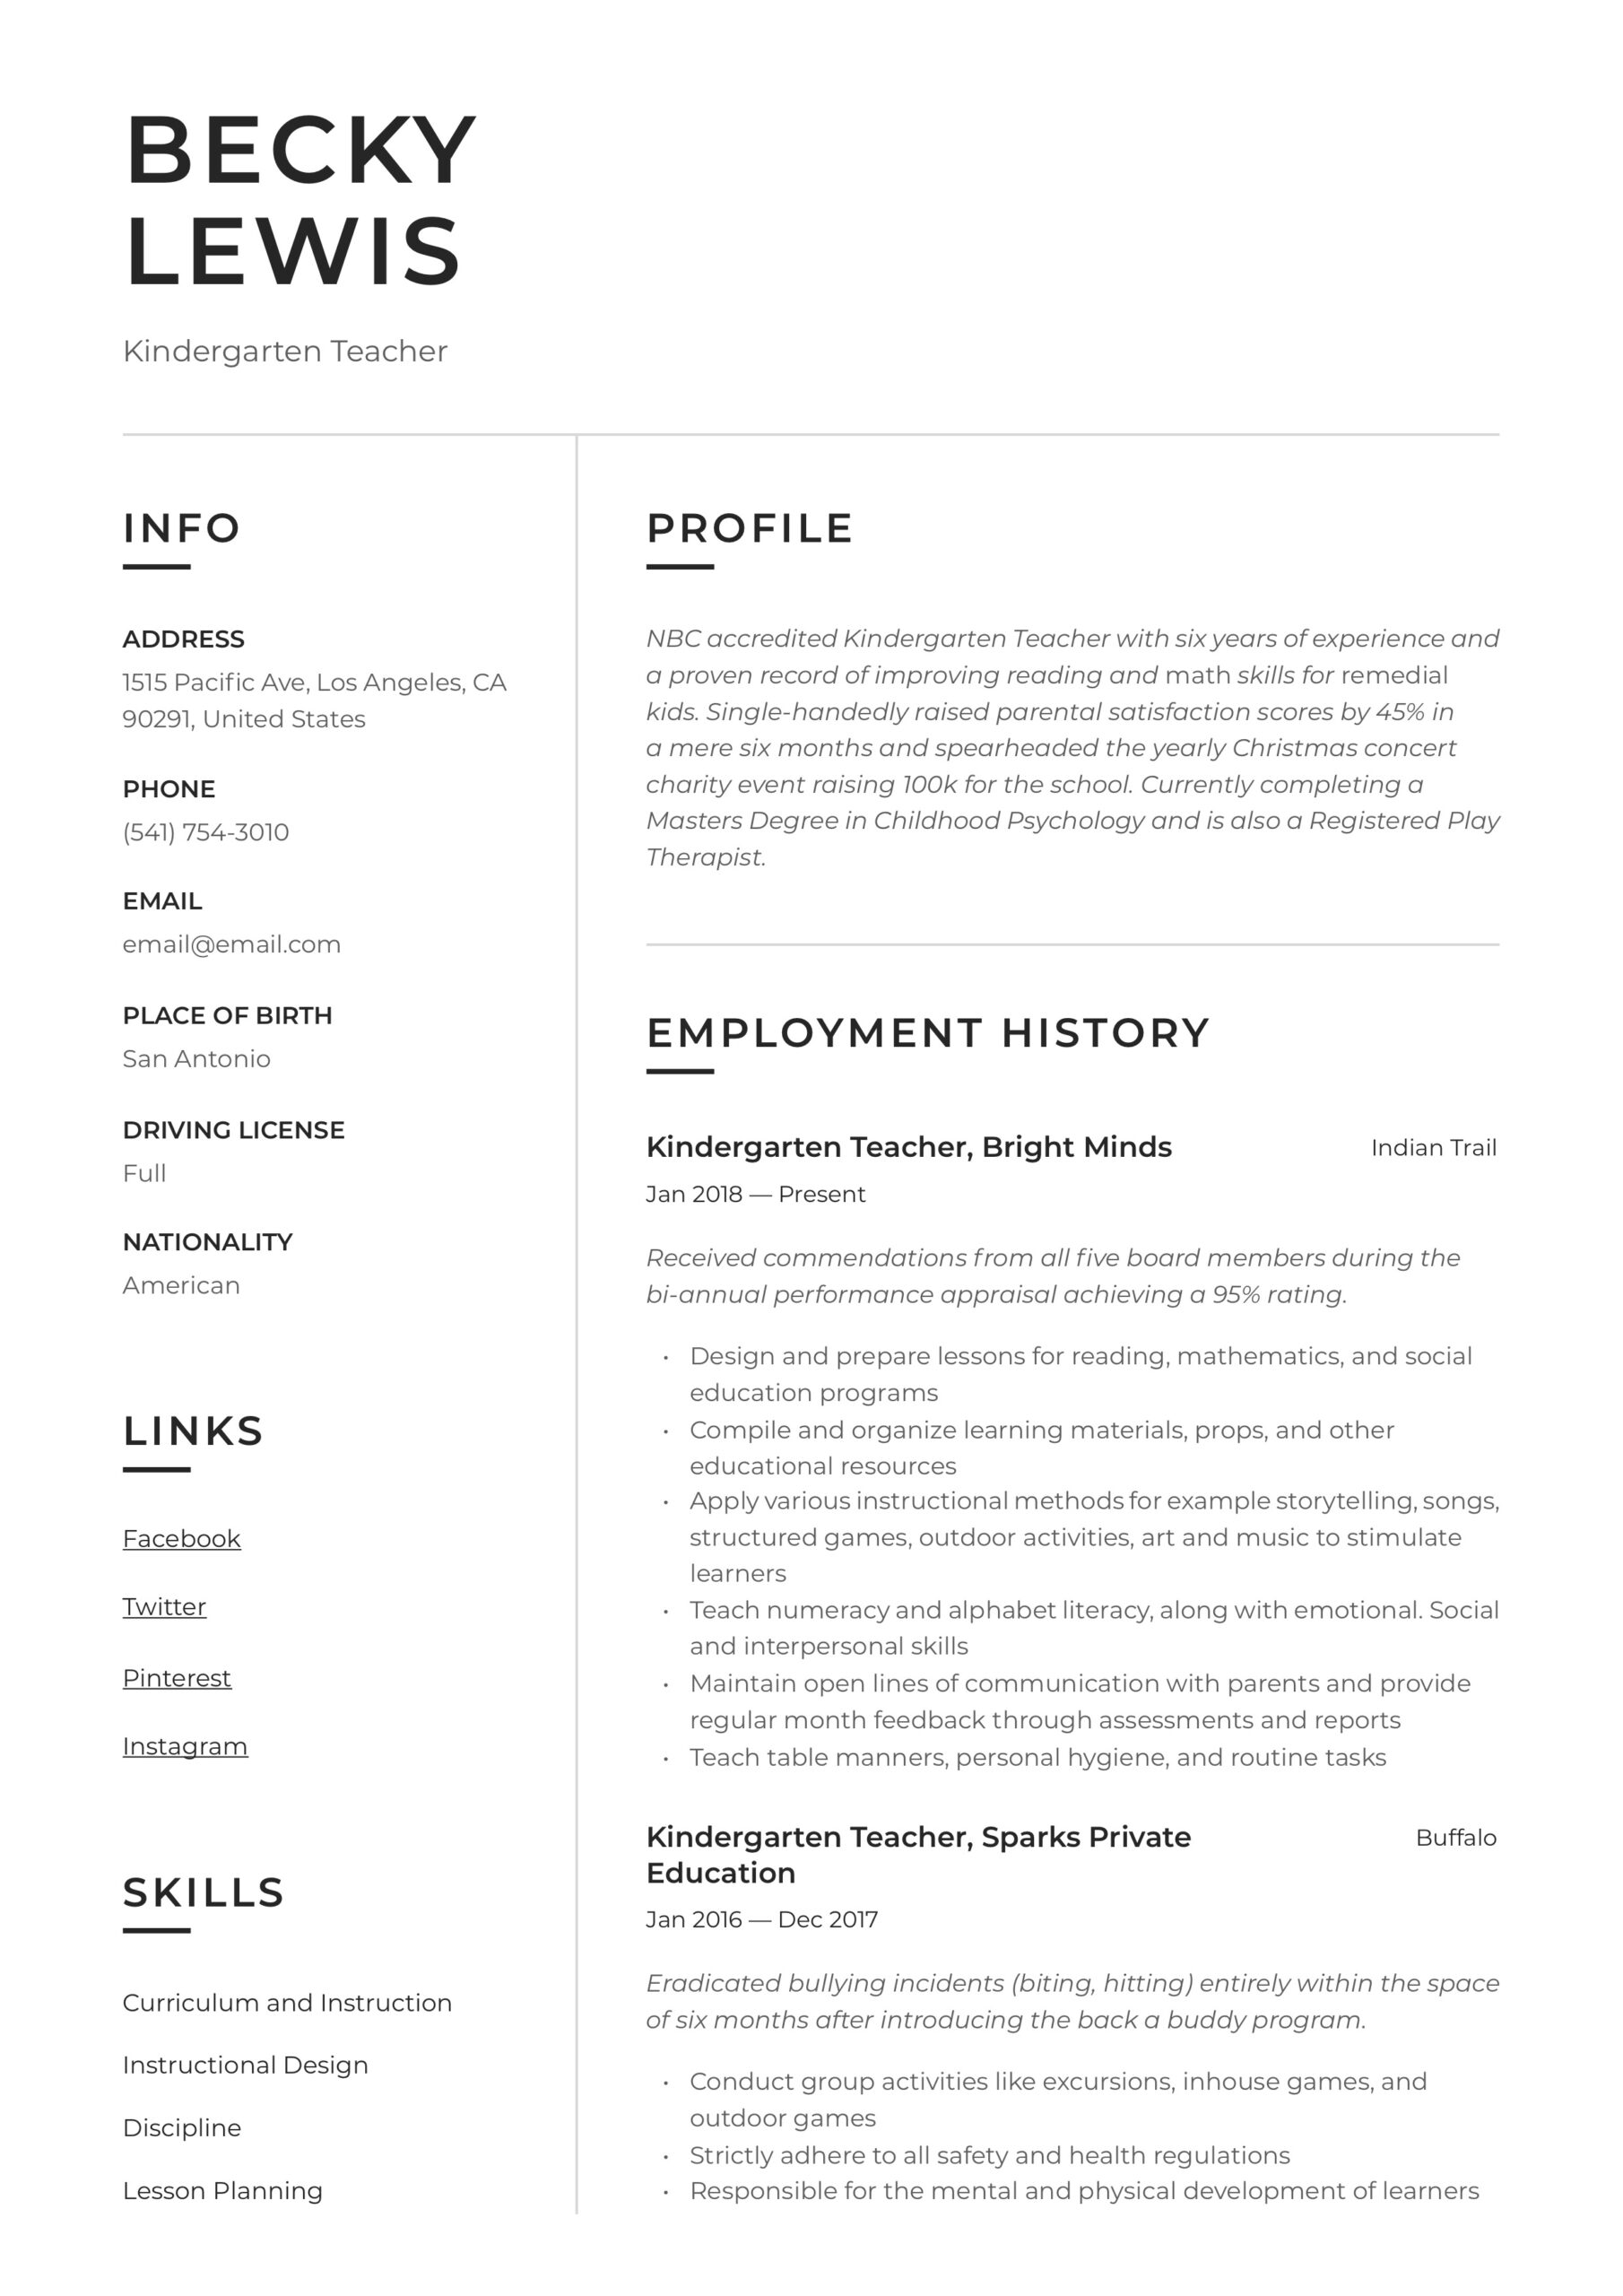 kindergarten teacher resume writing guide examples skills architecture firm under review Resume Kindergarten Teacher Skills Resume